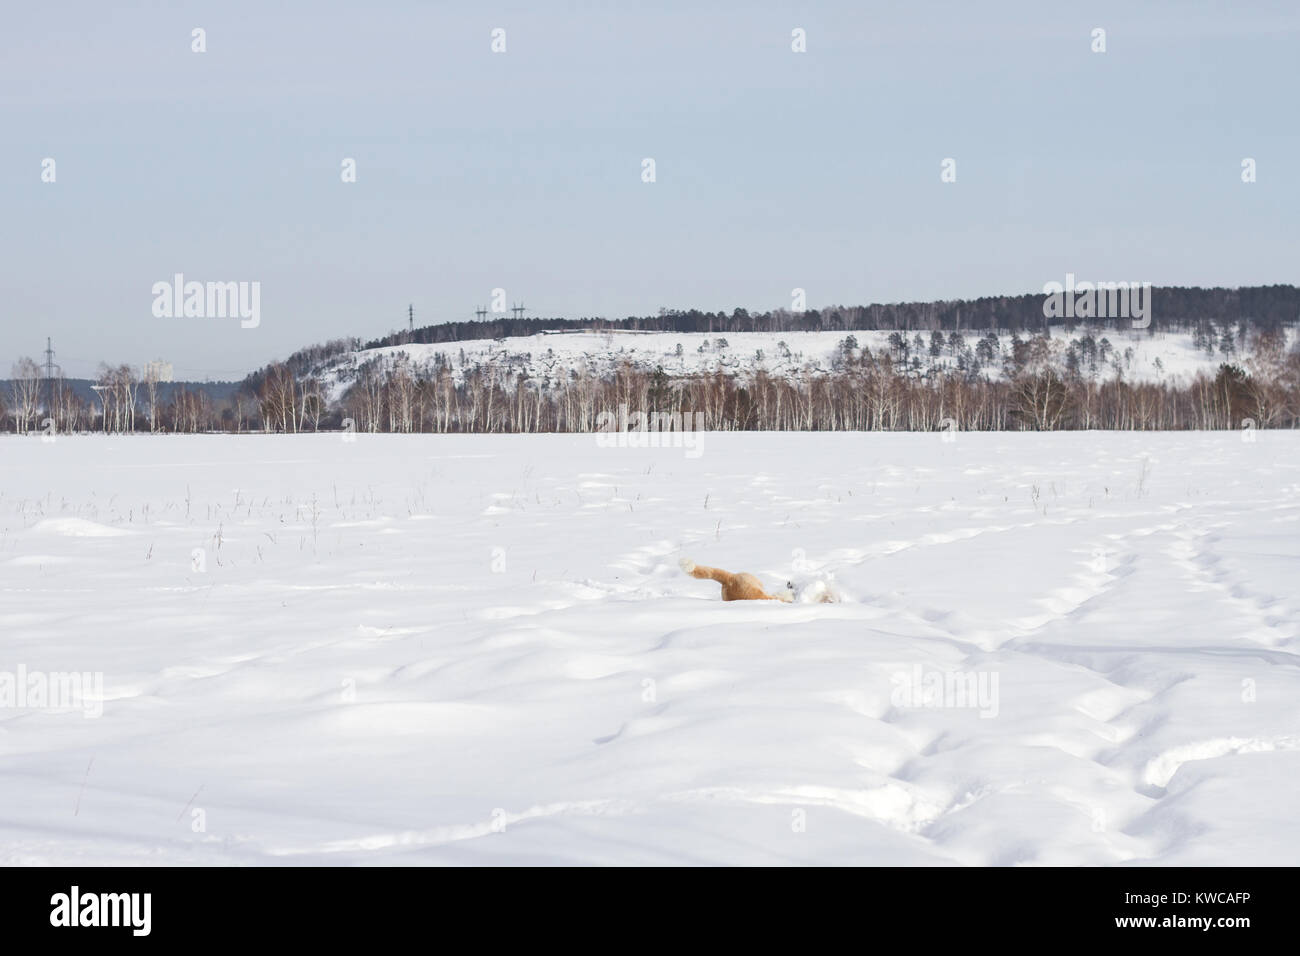 A happy Japanese Akita Inu dog is amusingly floundering in the snow in winter on a mountain forest background. - Stock Image